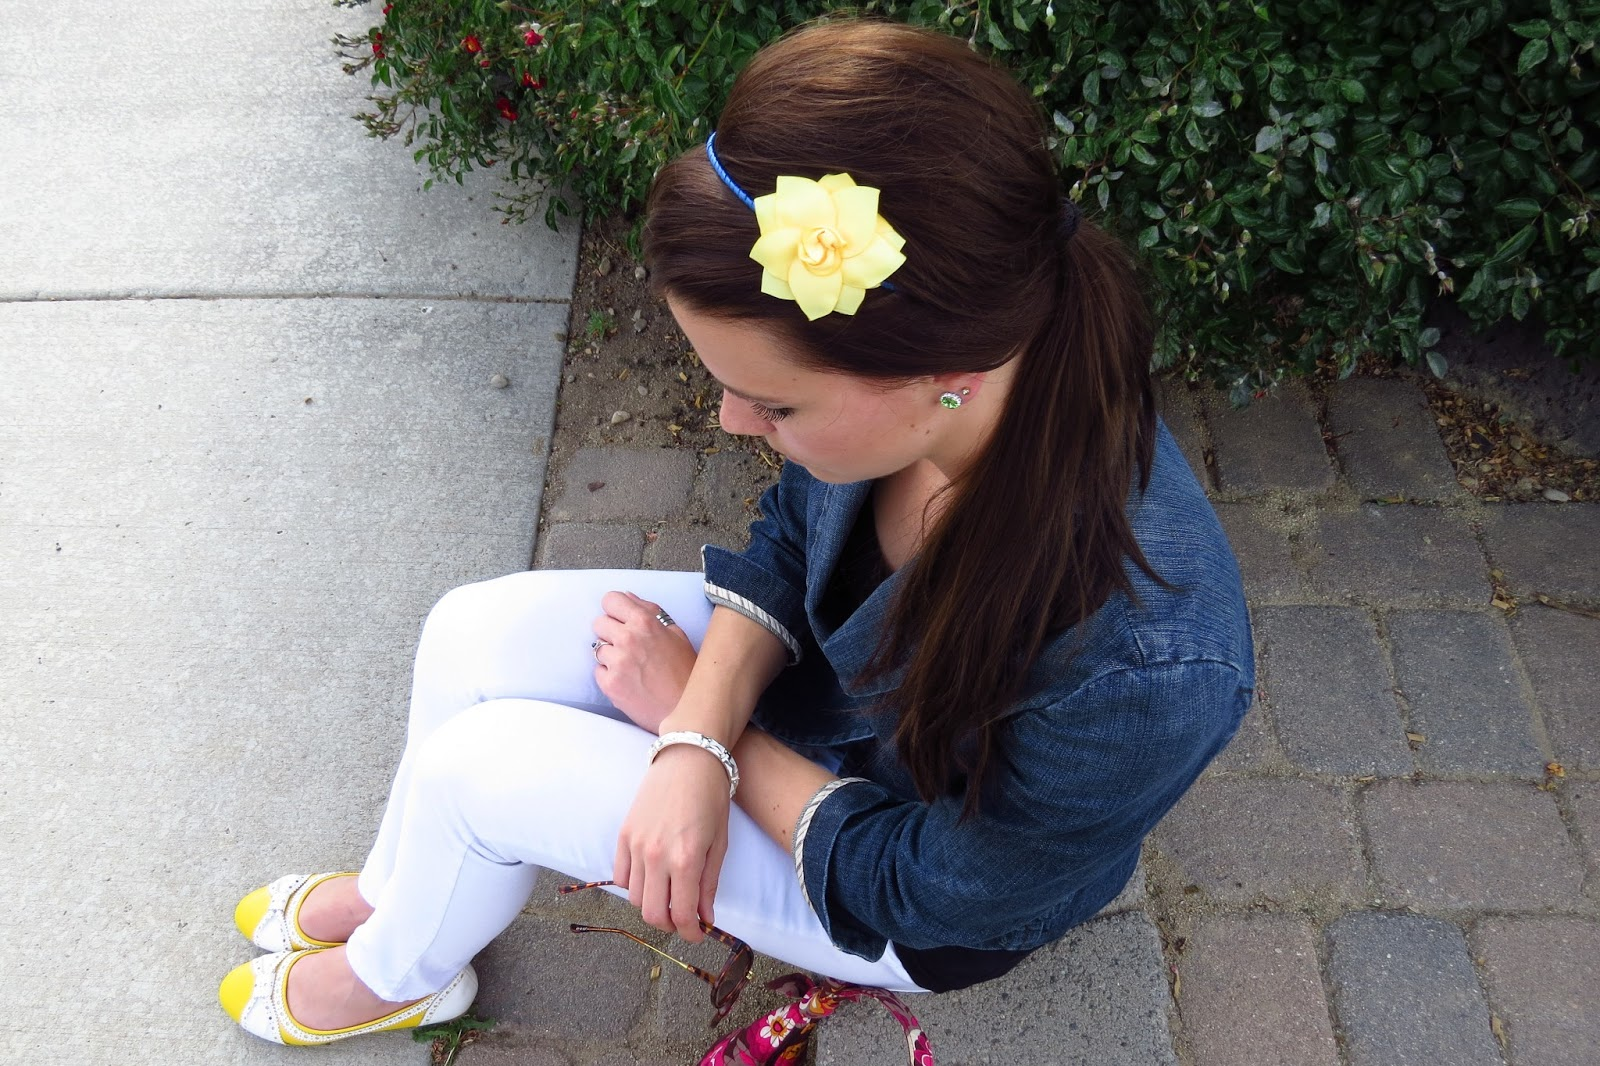 denim blazer, white pants, yellow flower headband